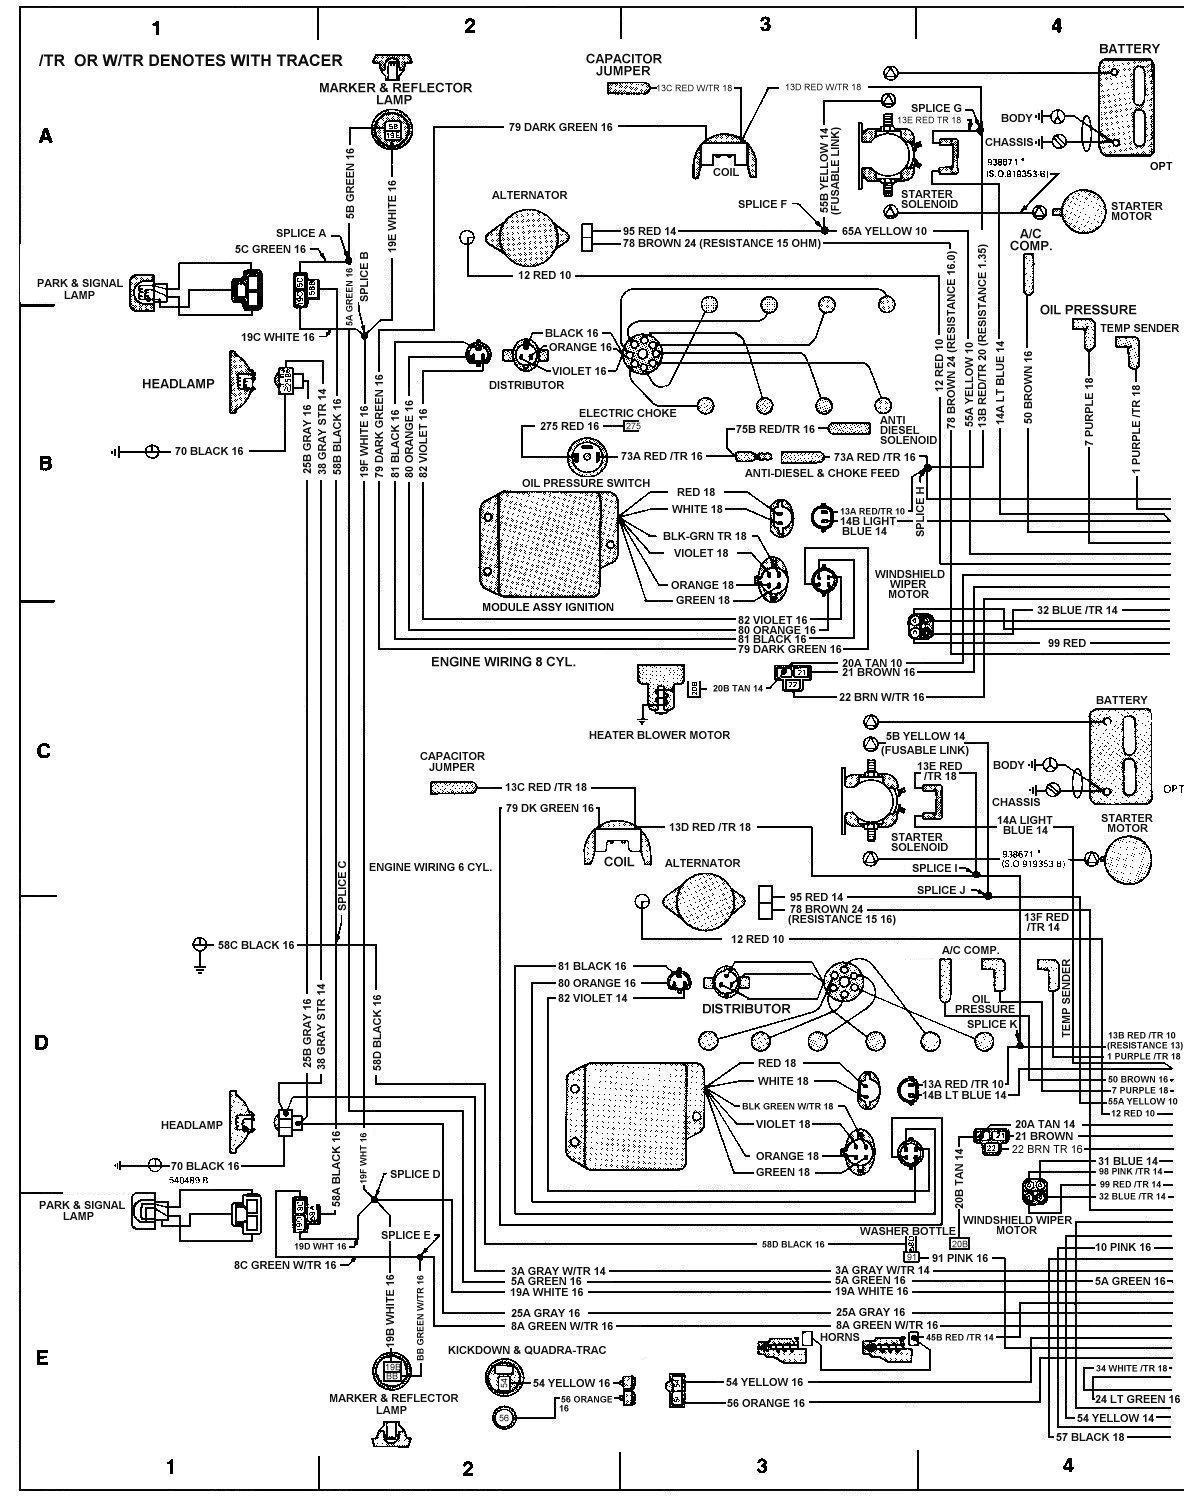 wiring harness jeep cj5 with 79 Corvette Ac System Diagram on Willcox Corvette Inc Parts Restoration as well P 0900c1528004b198 together with RepairGuideContent moreover 94 Chevy Ignition Switch Wiring Diagram also .